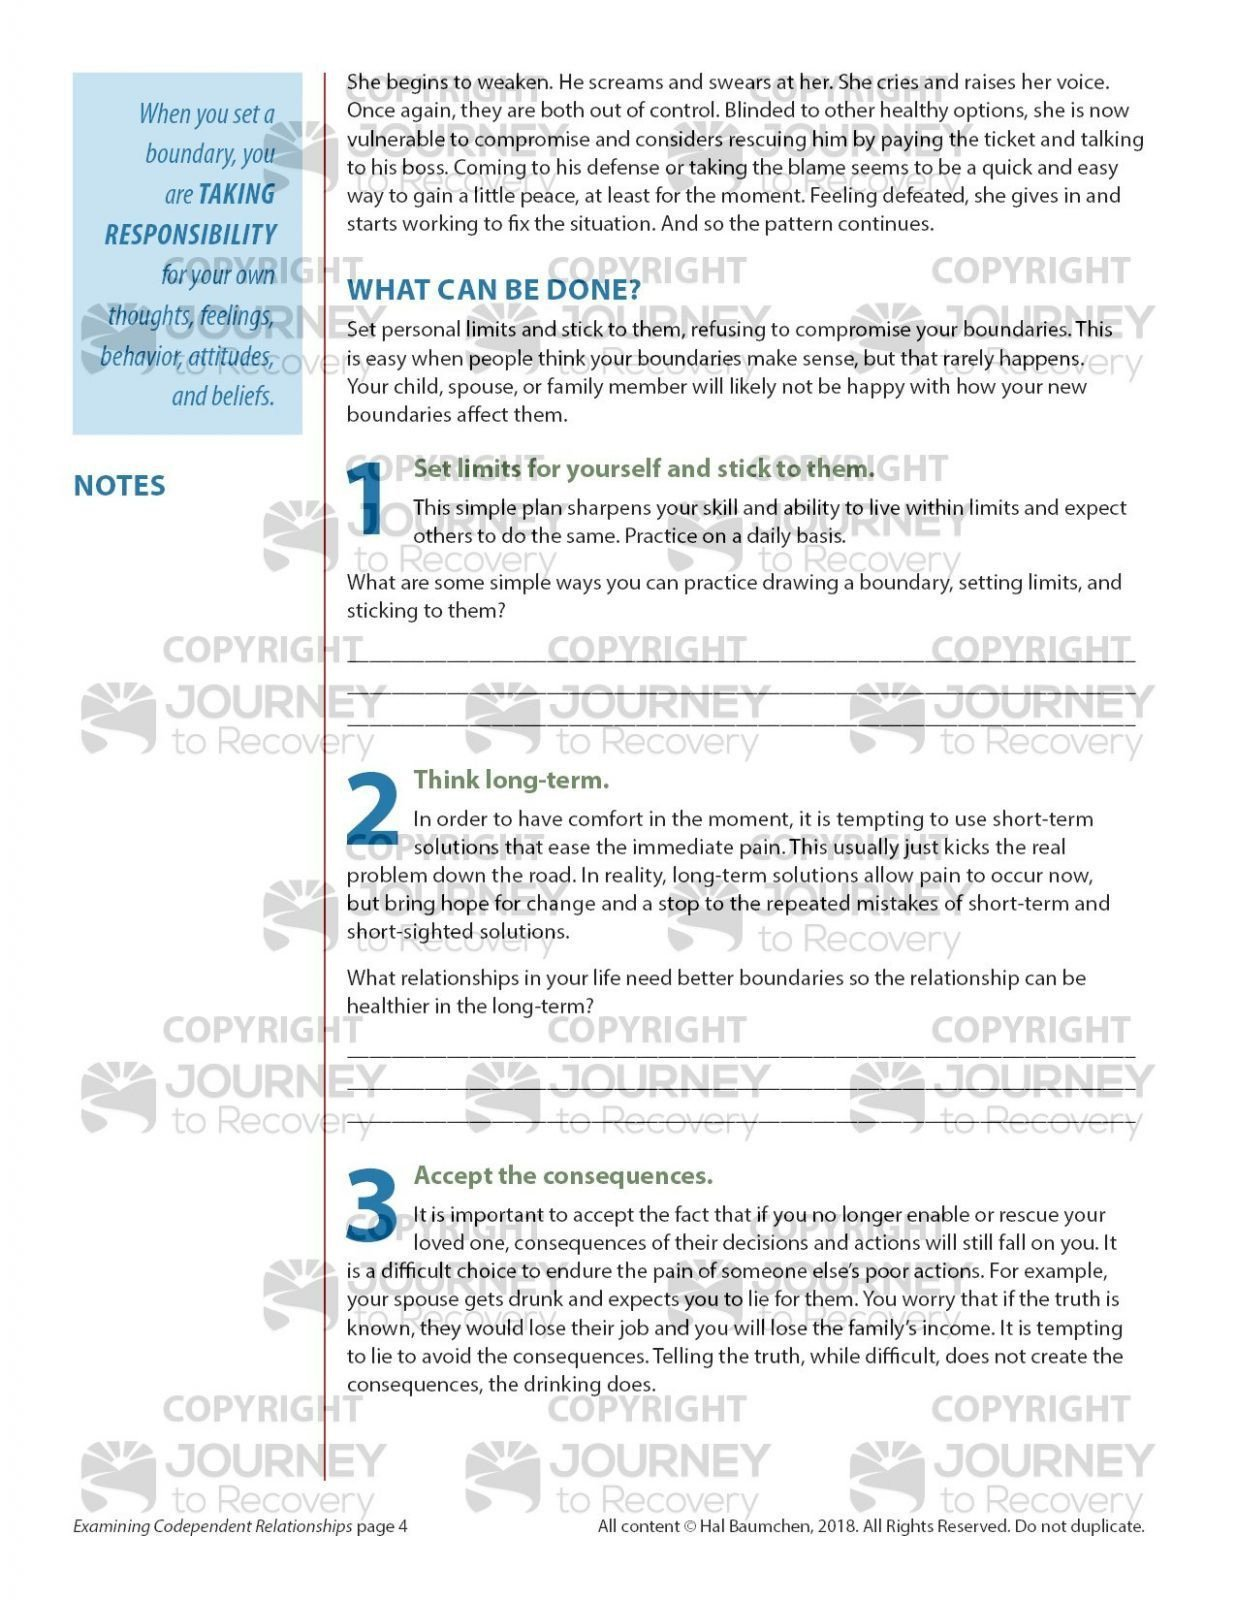 codependency therapy worksheets pdf co dependent relationship worksheet of codependency therapy worksheets pdf 1